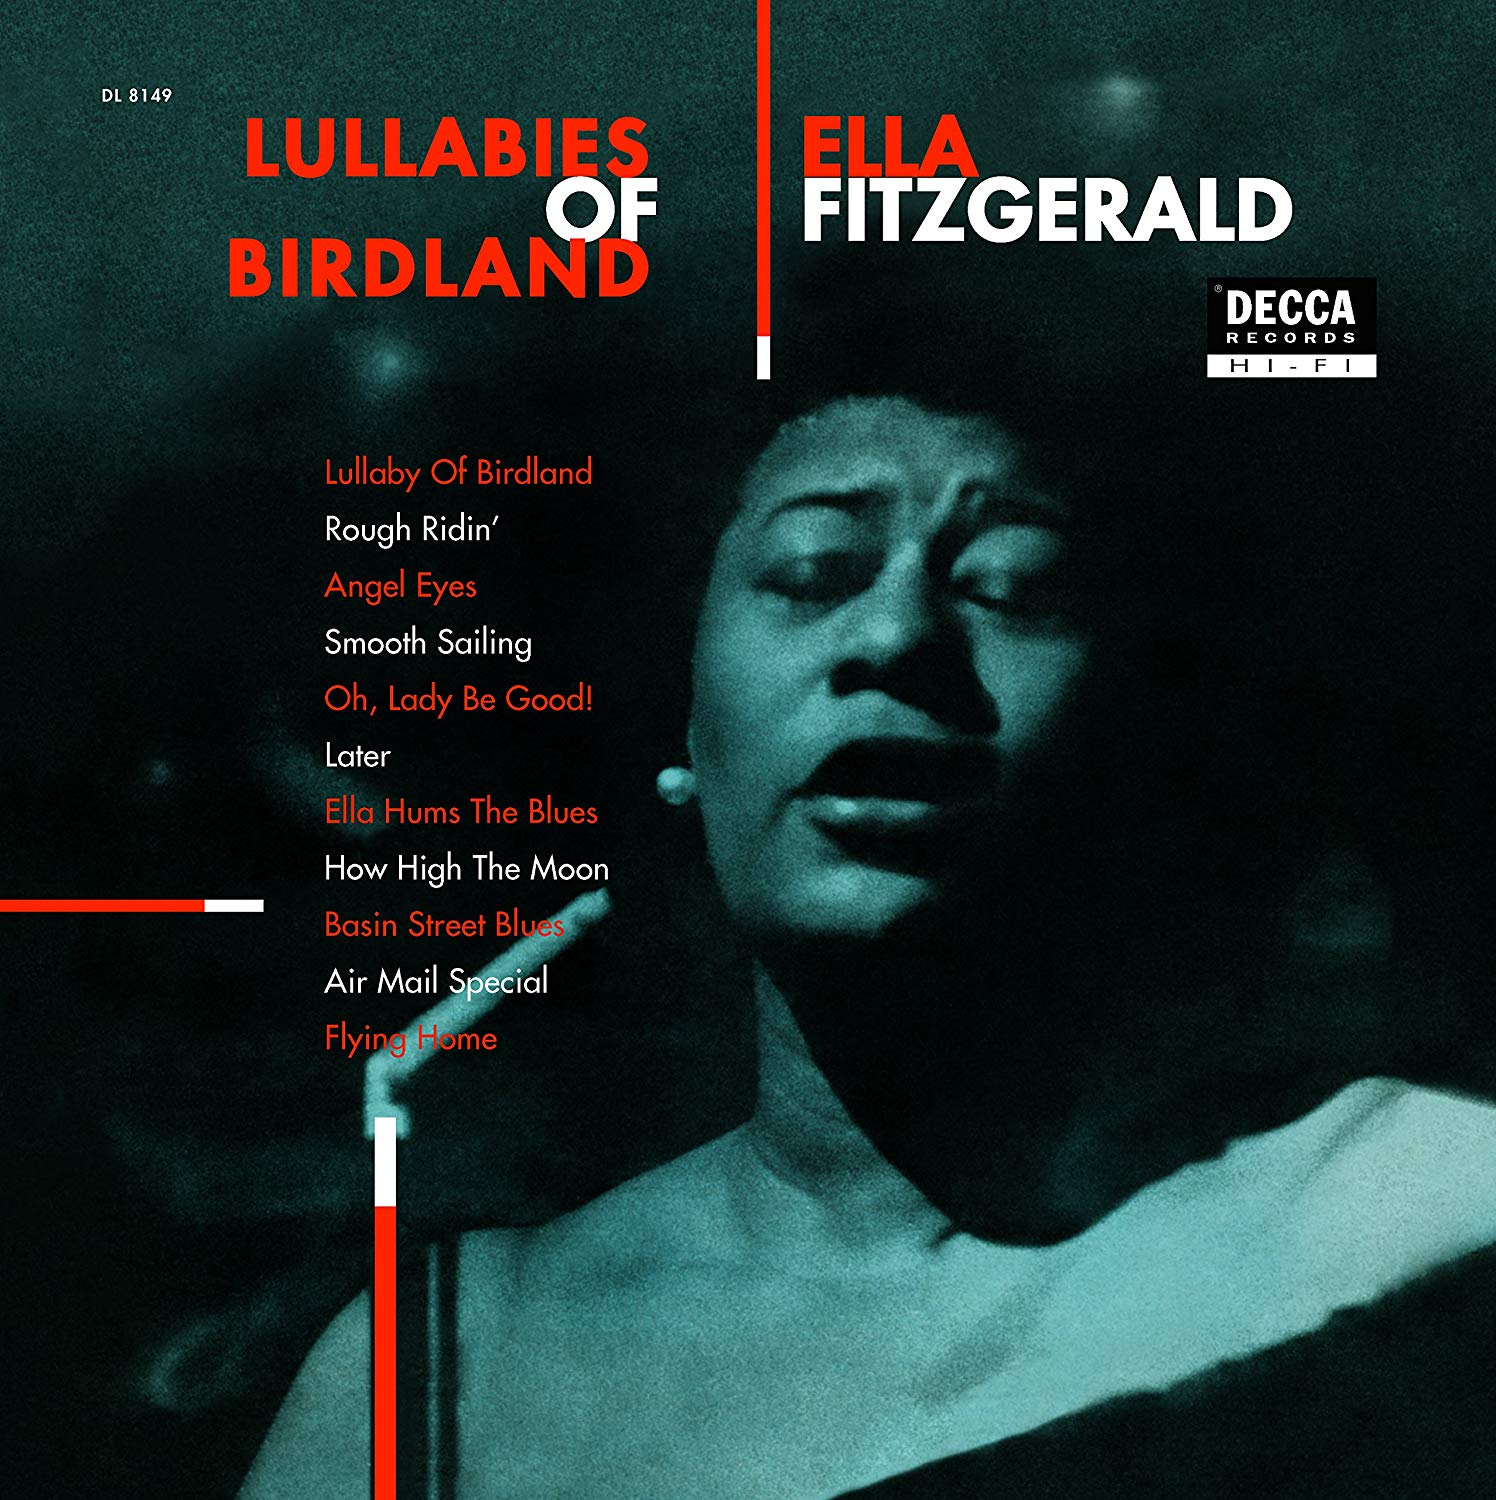 Ella Fitzgerald - Lullabies Of Birdland [LP] (180 Gram Audiophile Vinyl, import) - Urban Vinyl | Records, Headphones, and more.